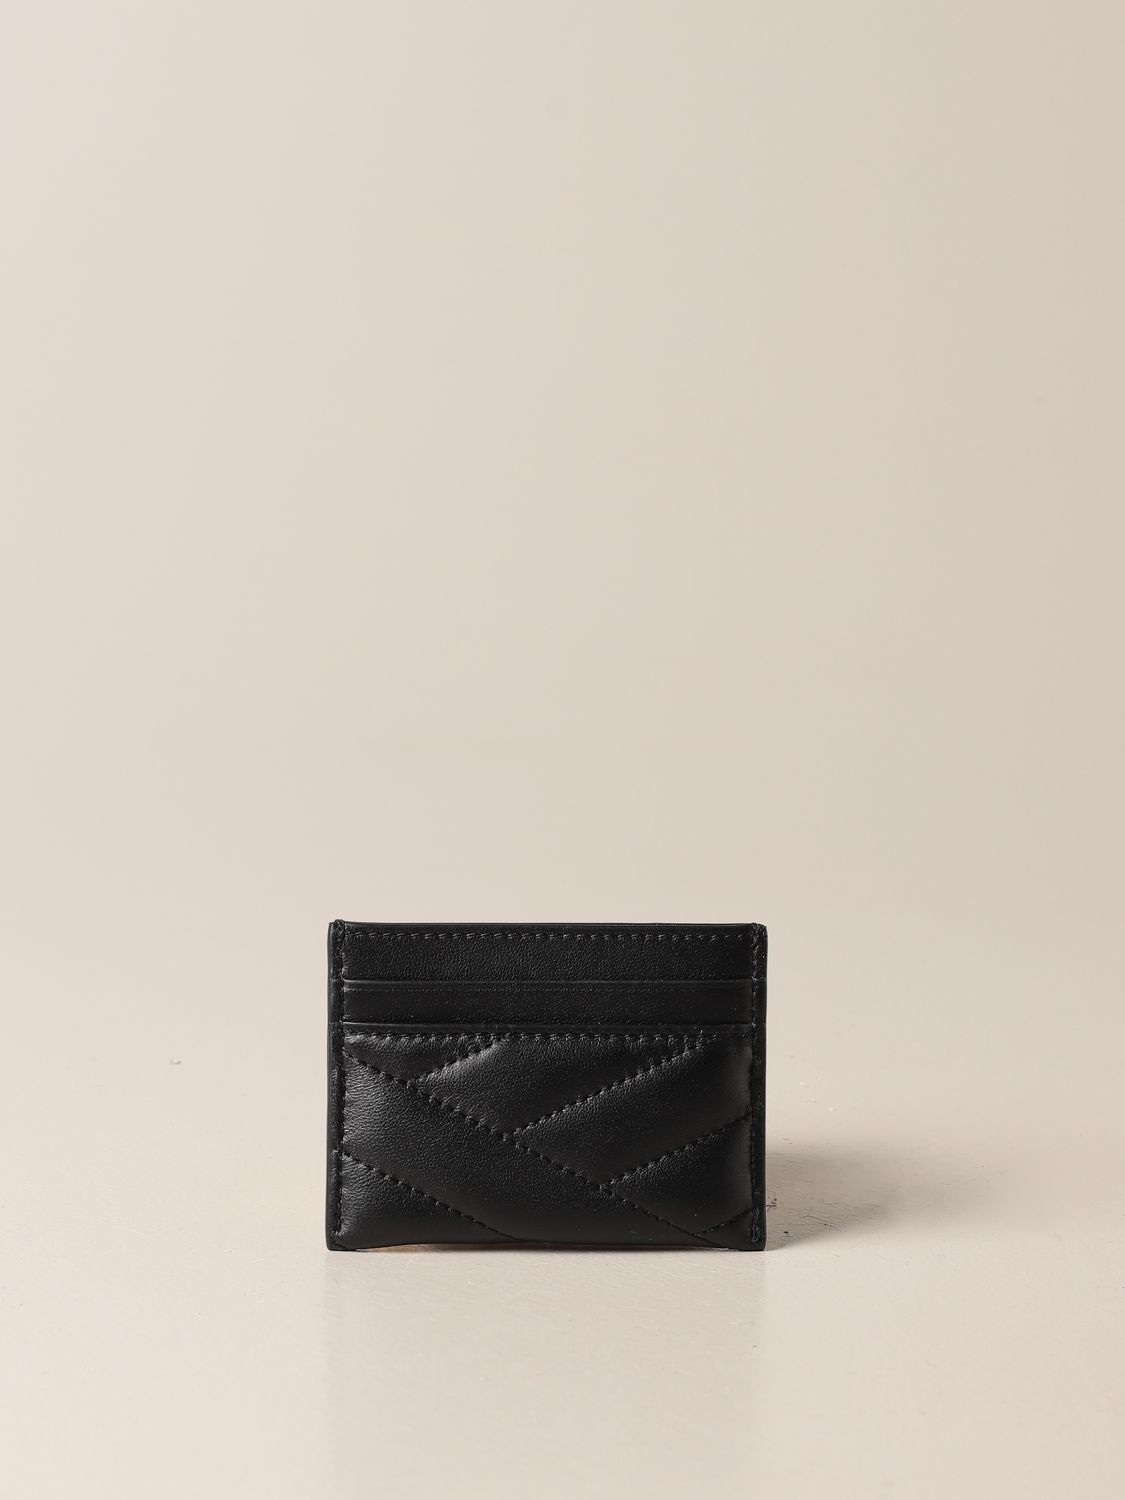 Wallet Tory Burch: Tory Burch credit card holder in quilted leather with metallic emblem black 2